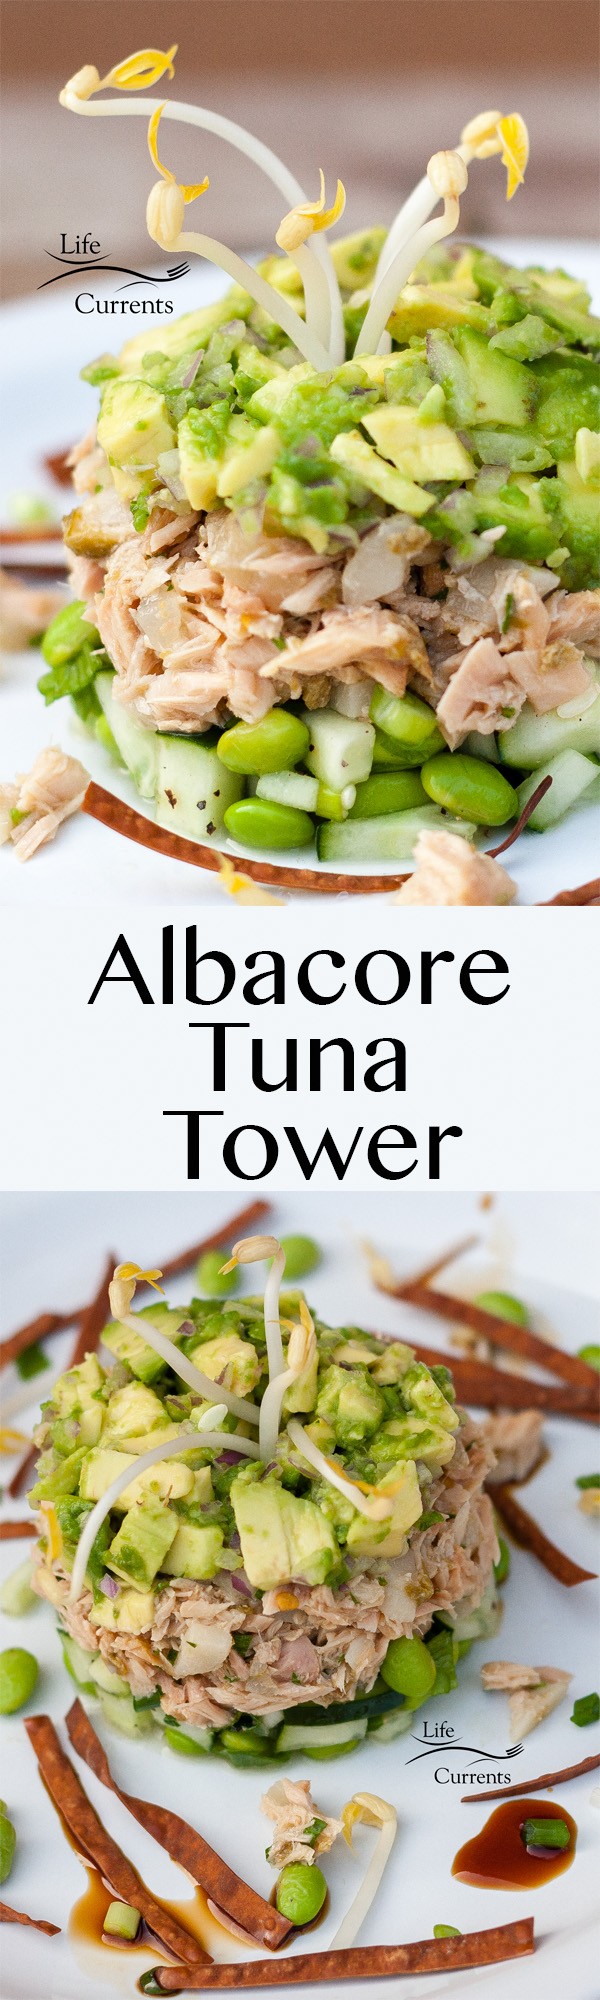 Island Trollers Albacore Tuna Tower Recipe - a beautiful and impressive appetizer